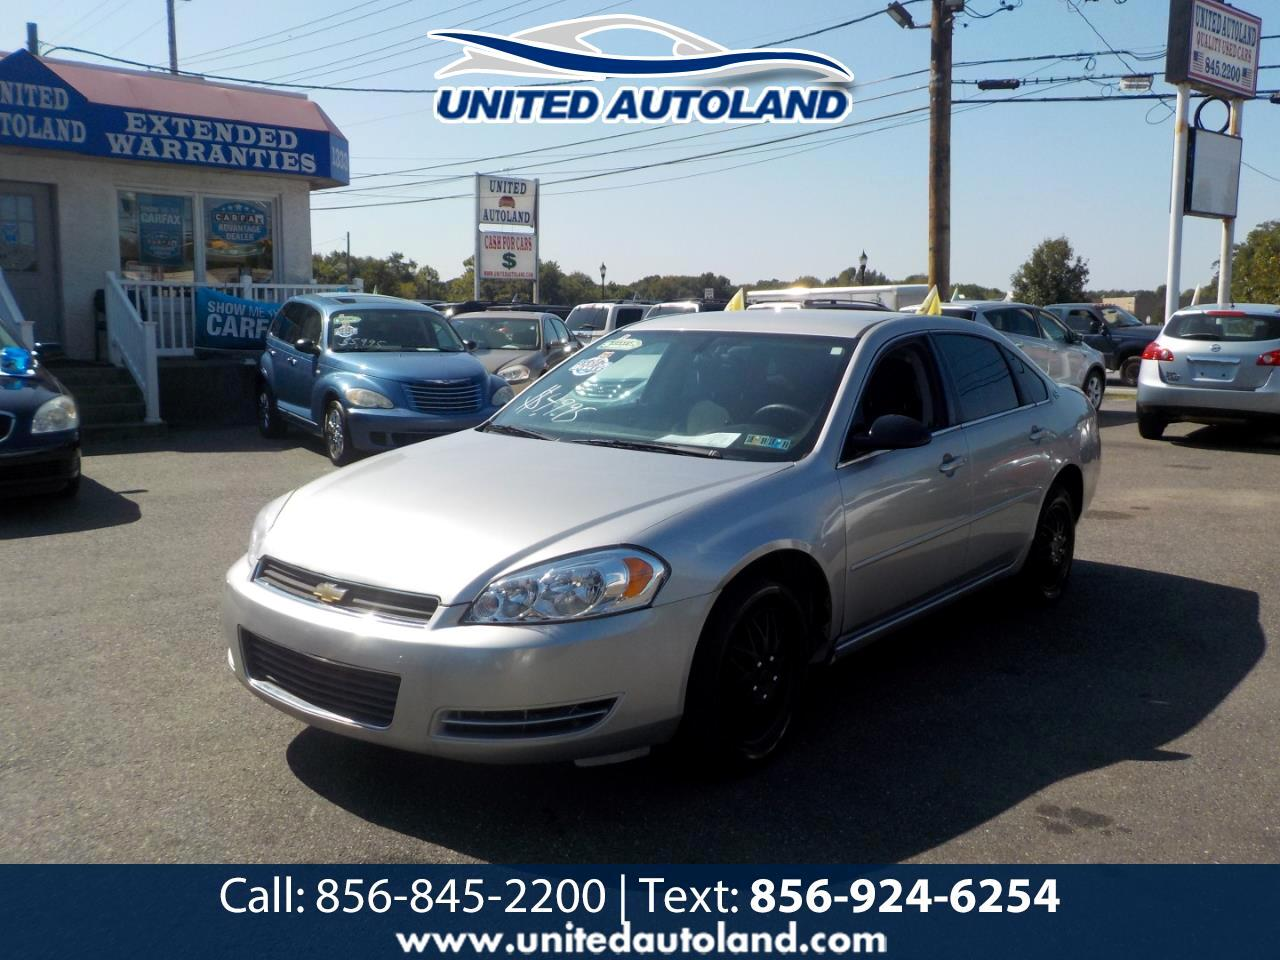 used 2007 chevrolet impala police pkg 4dr sdn unmarked police pkg 9c3 for sale in deptford nj 08096 united auto land united auto land